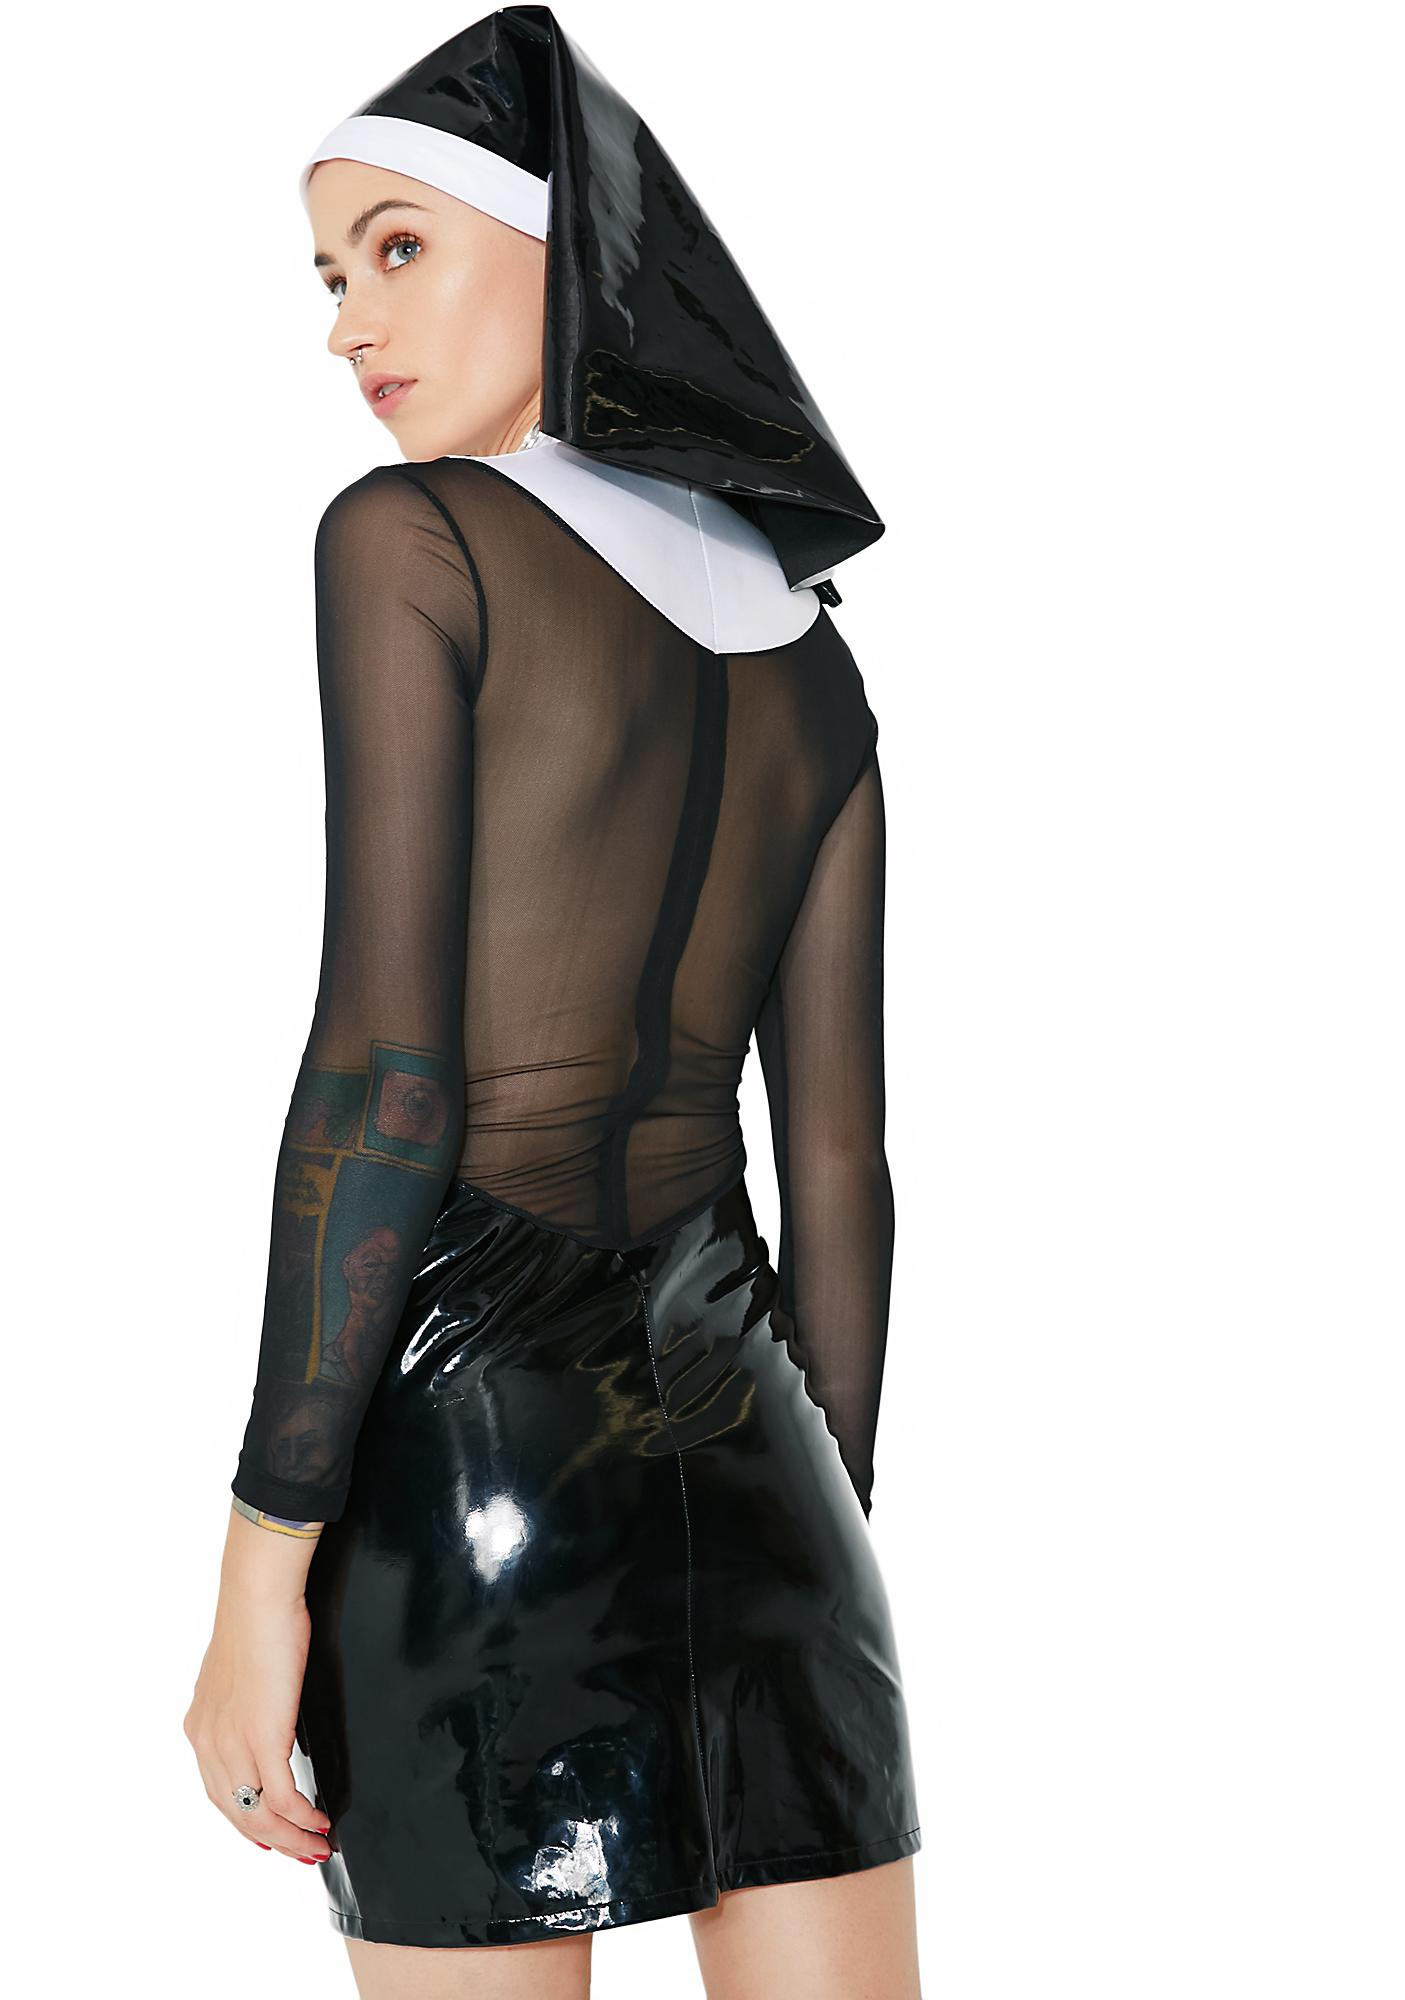 Sinful Mama Don't Preach Costume